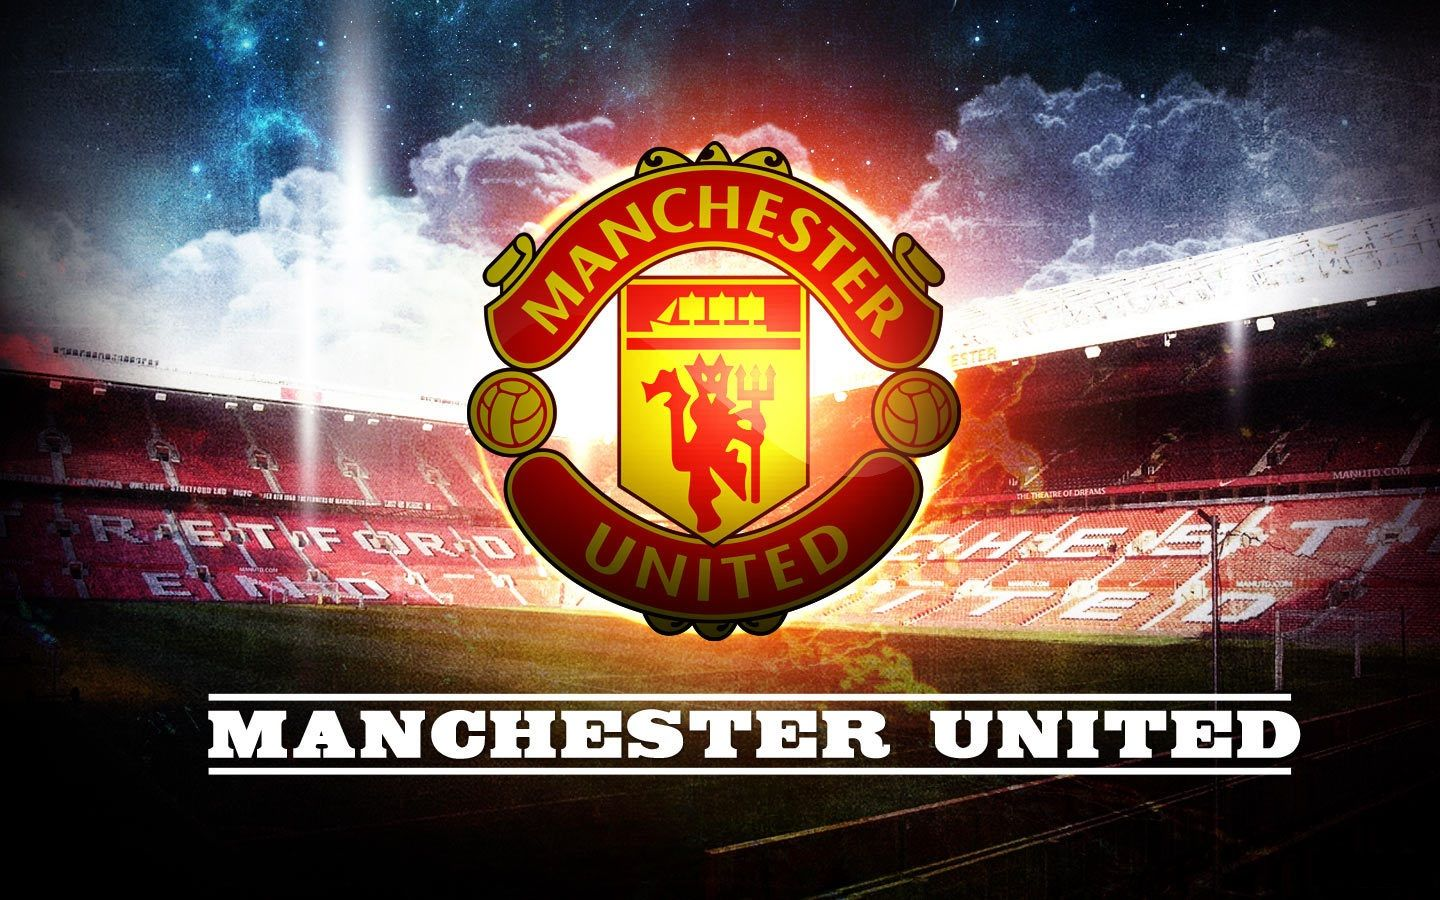 Manchester United Logo Football Club Wallpaper 11587 Wallpaper Manchester United Wallpaper Manchester United Logo Manchester United